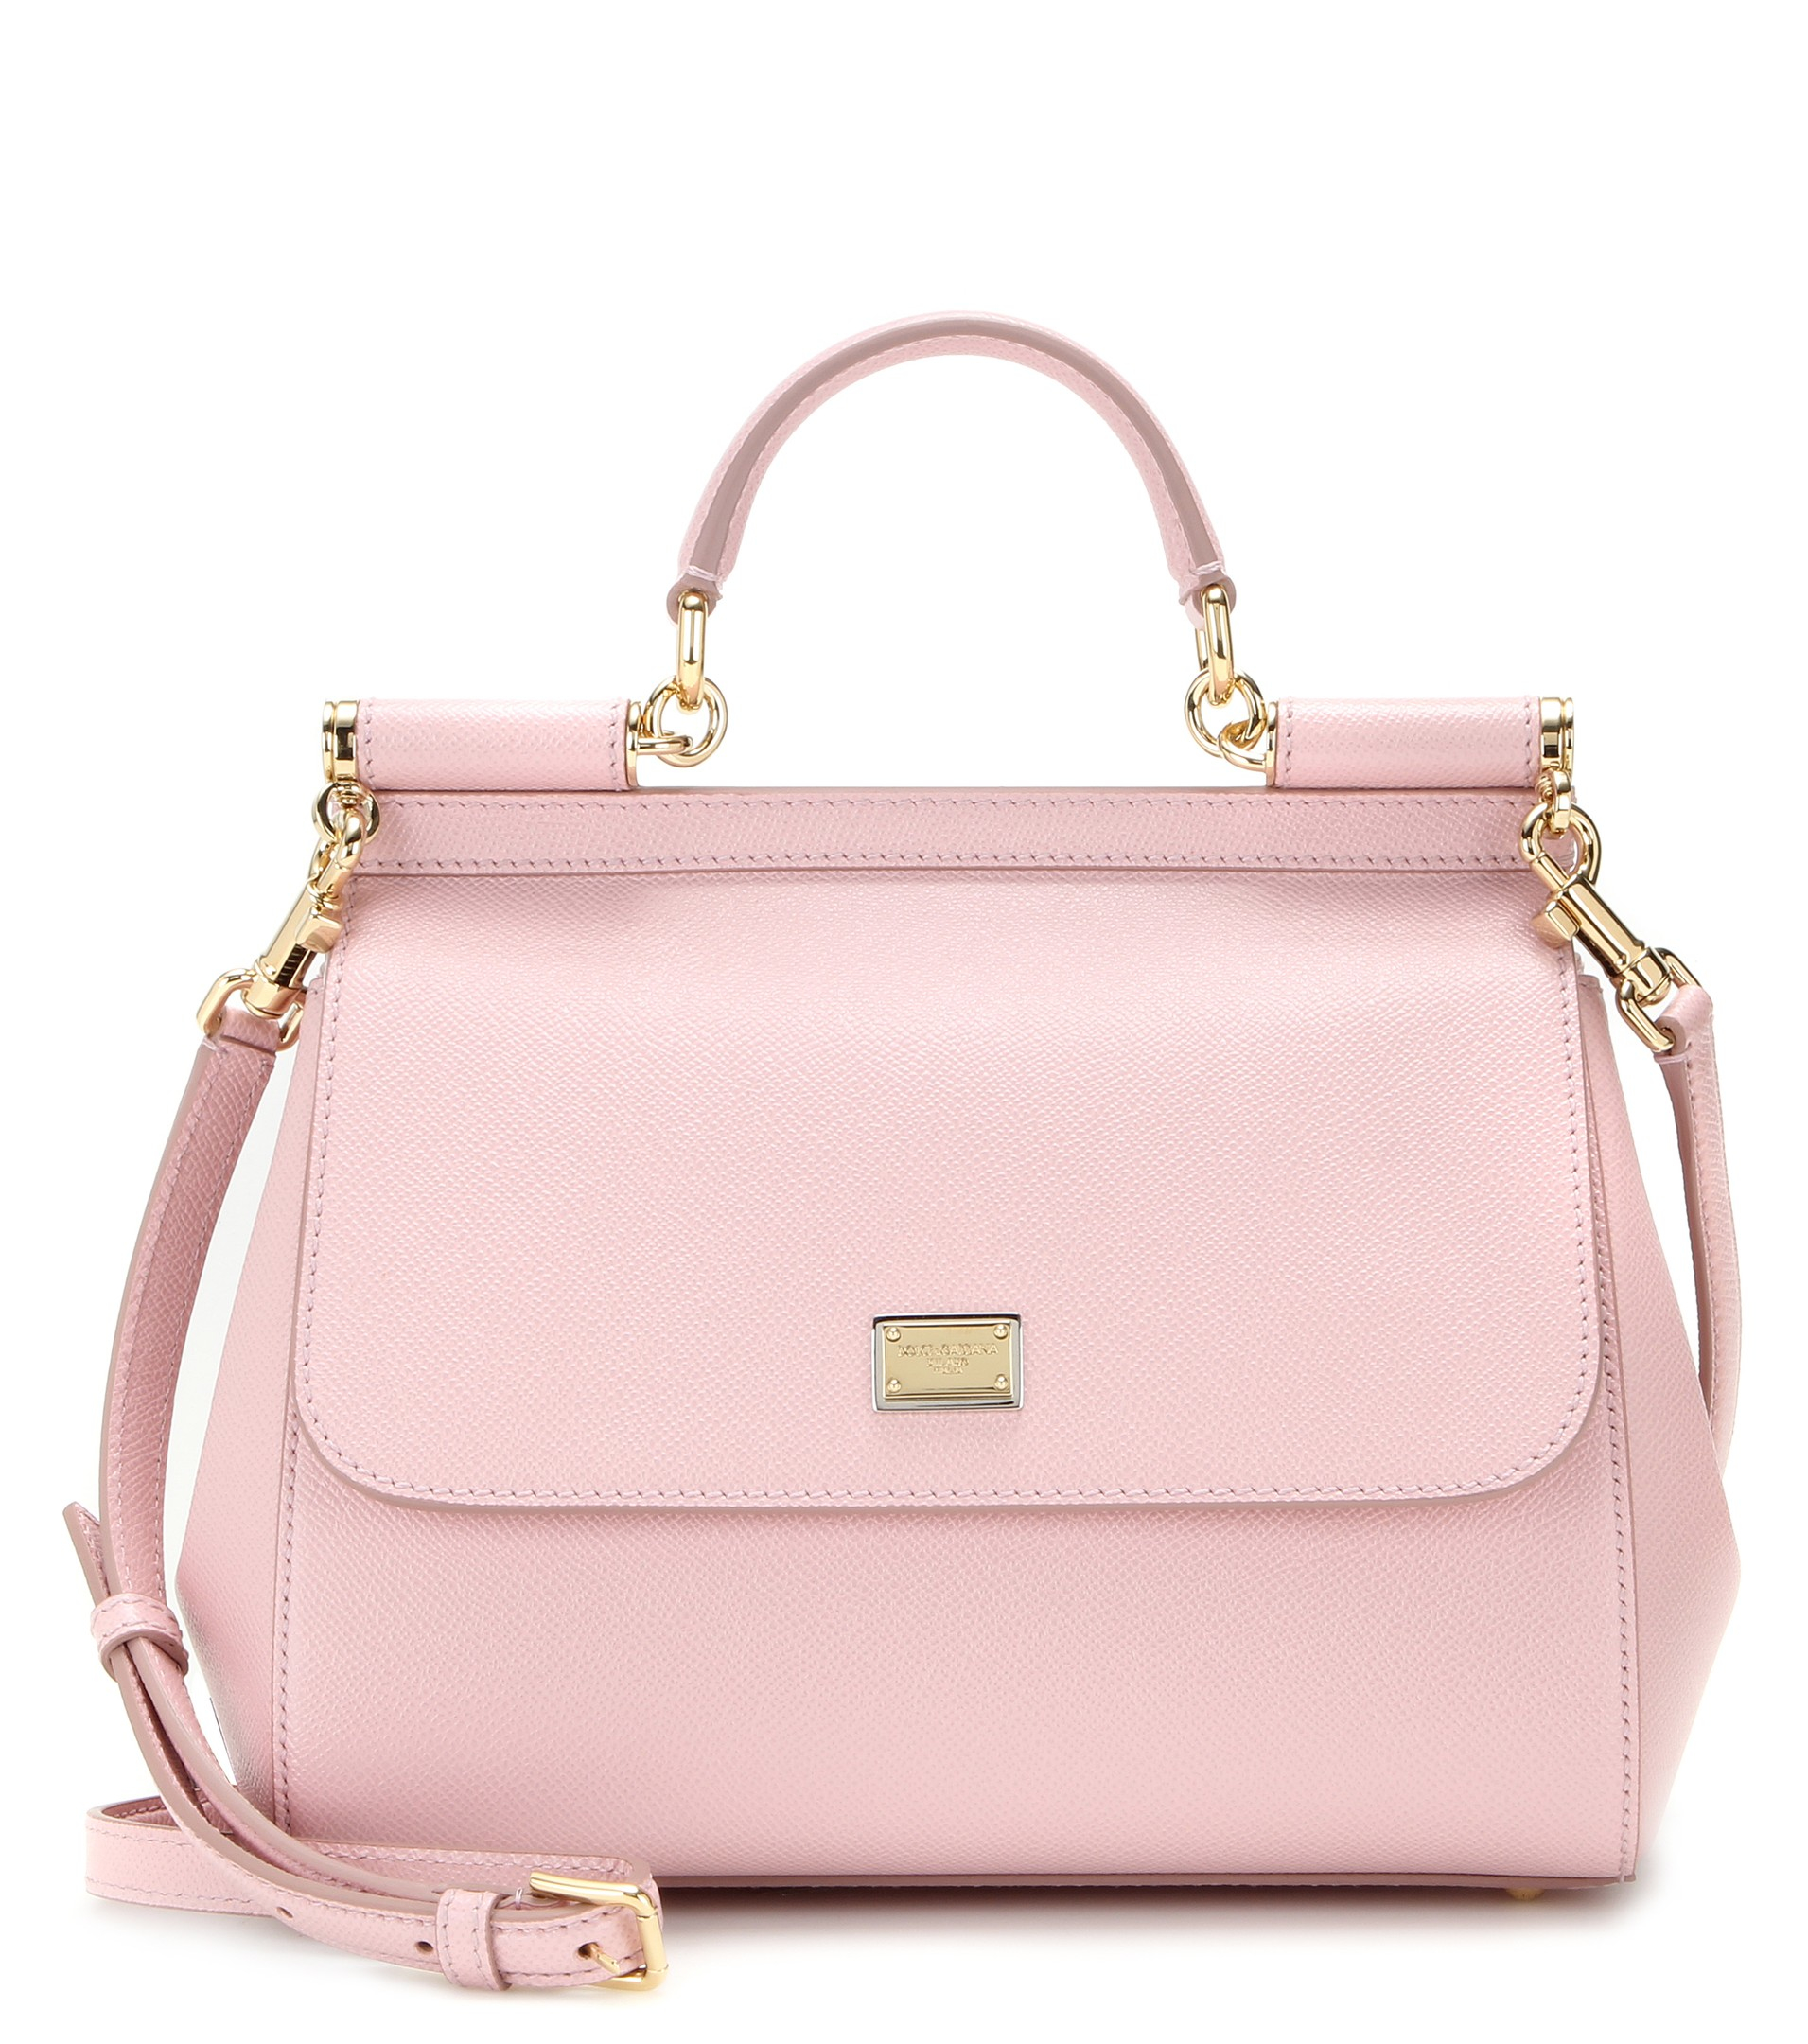 Lyst - Dolce   Gabbana Miss Sicily Medium Leather Shoulder Bag in Pink a2d8d5851aeeb